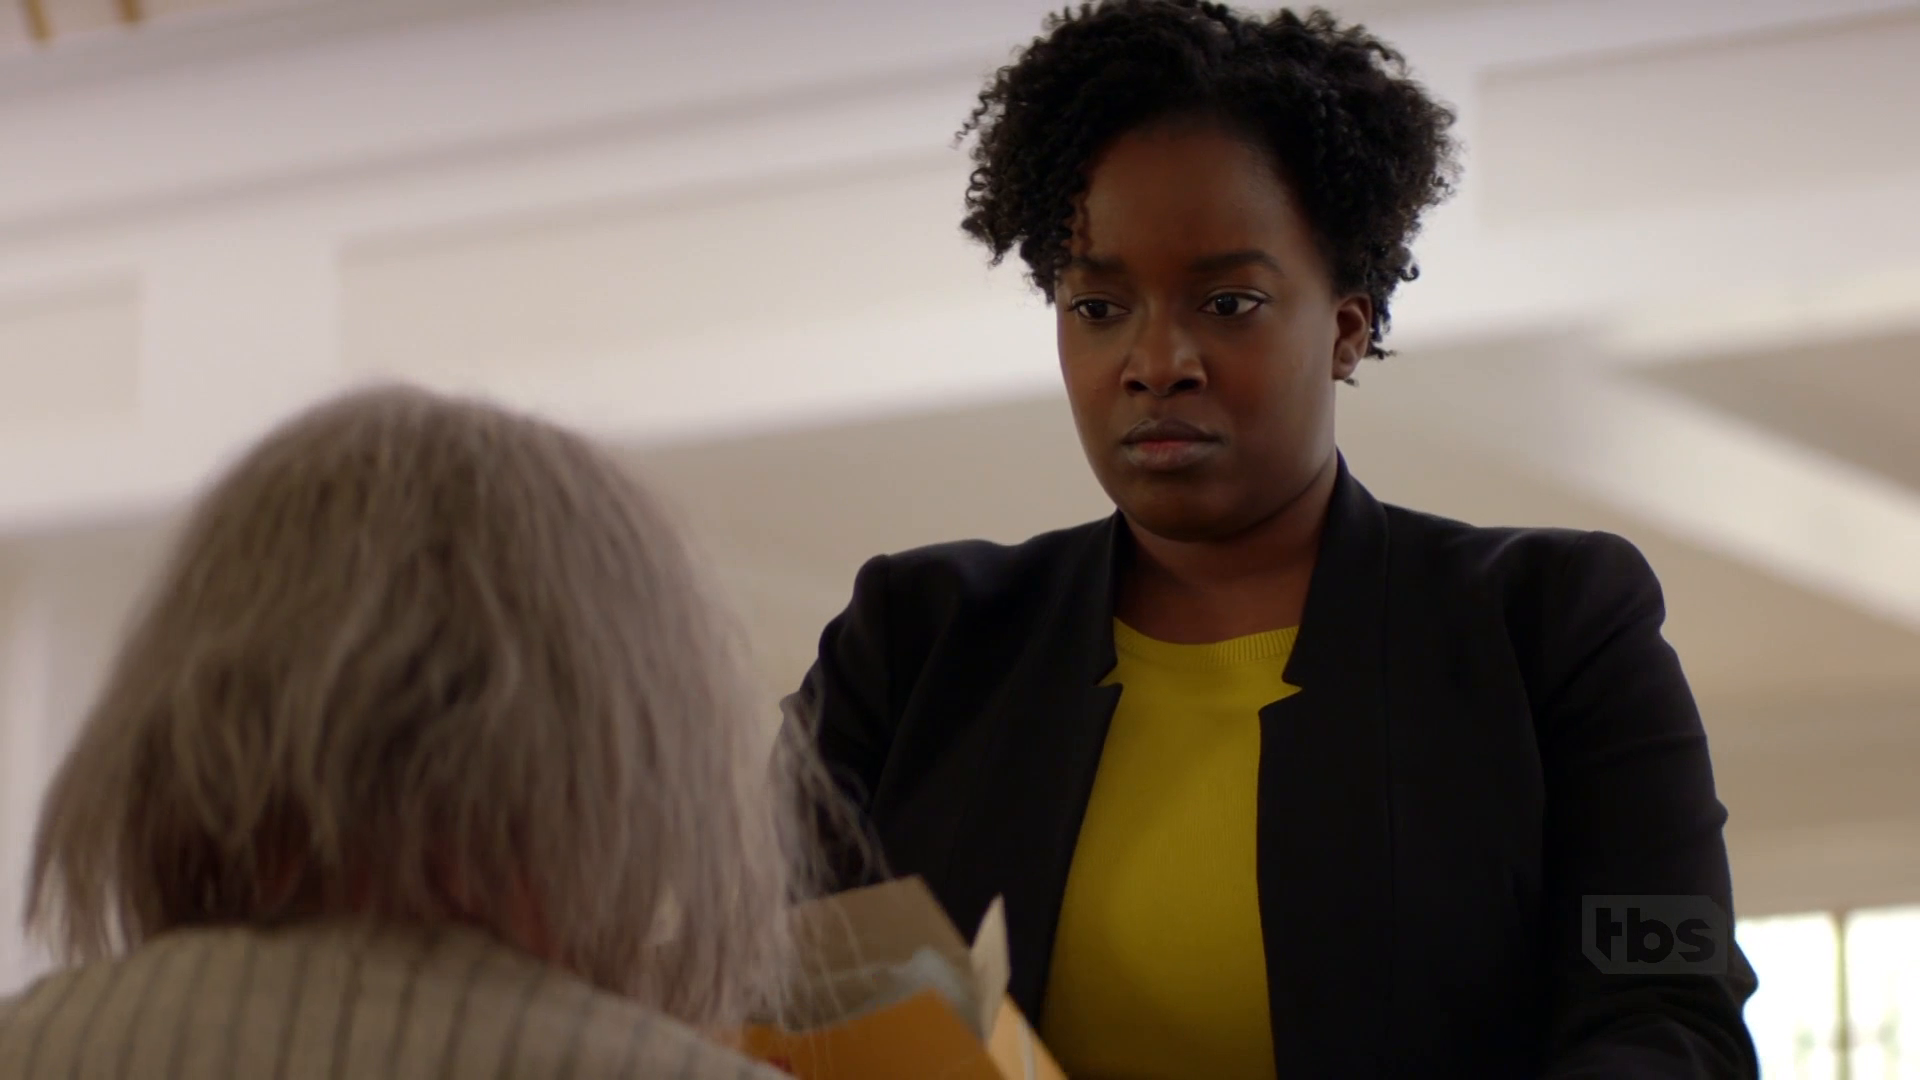 Miracle Workers 2019 S01E05 1080p WEBRip x264-TBS